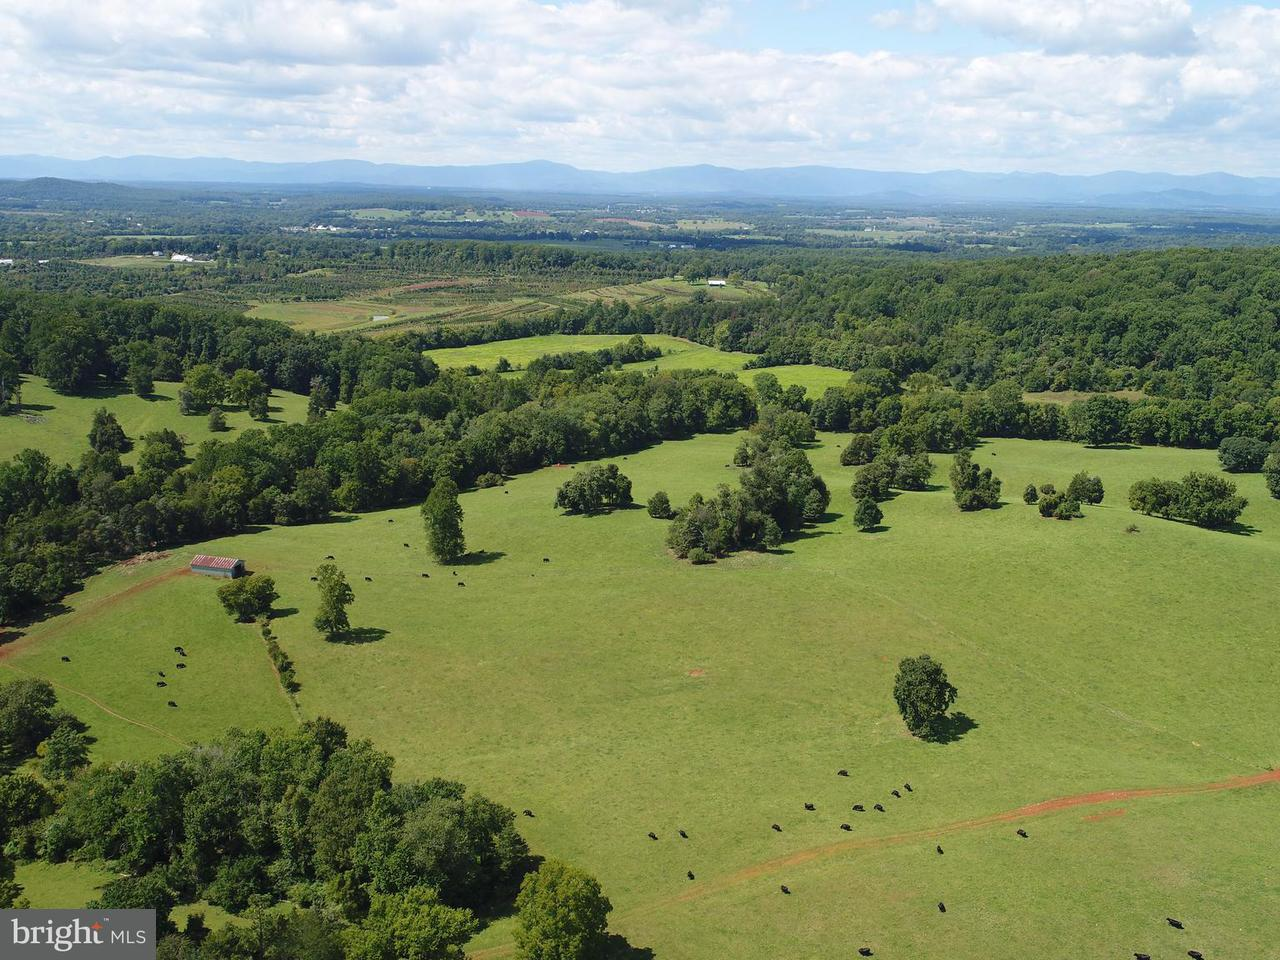 Land for Sale at 0 Chicken Mountain Rd Gordonsville, Virginia 22942 United States